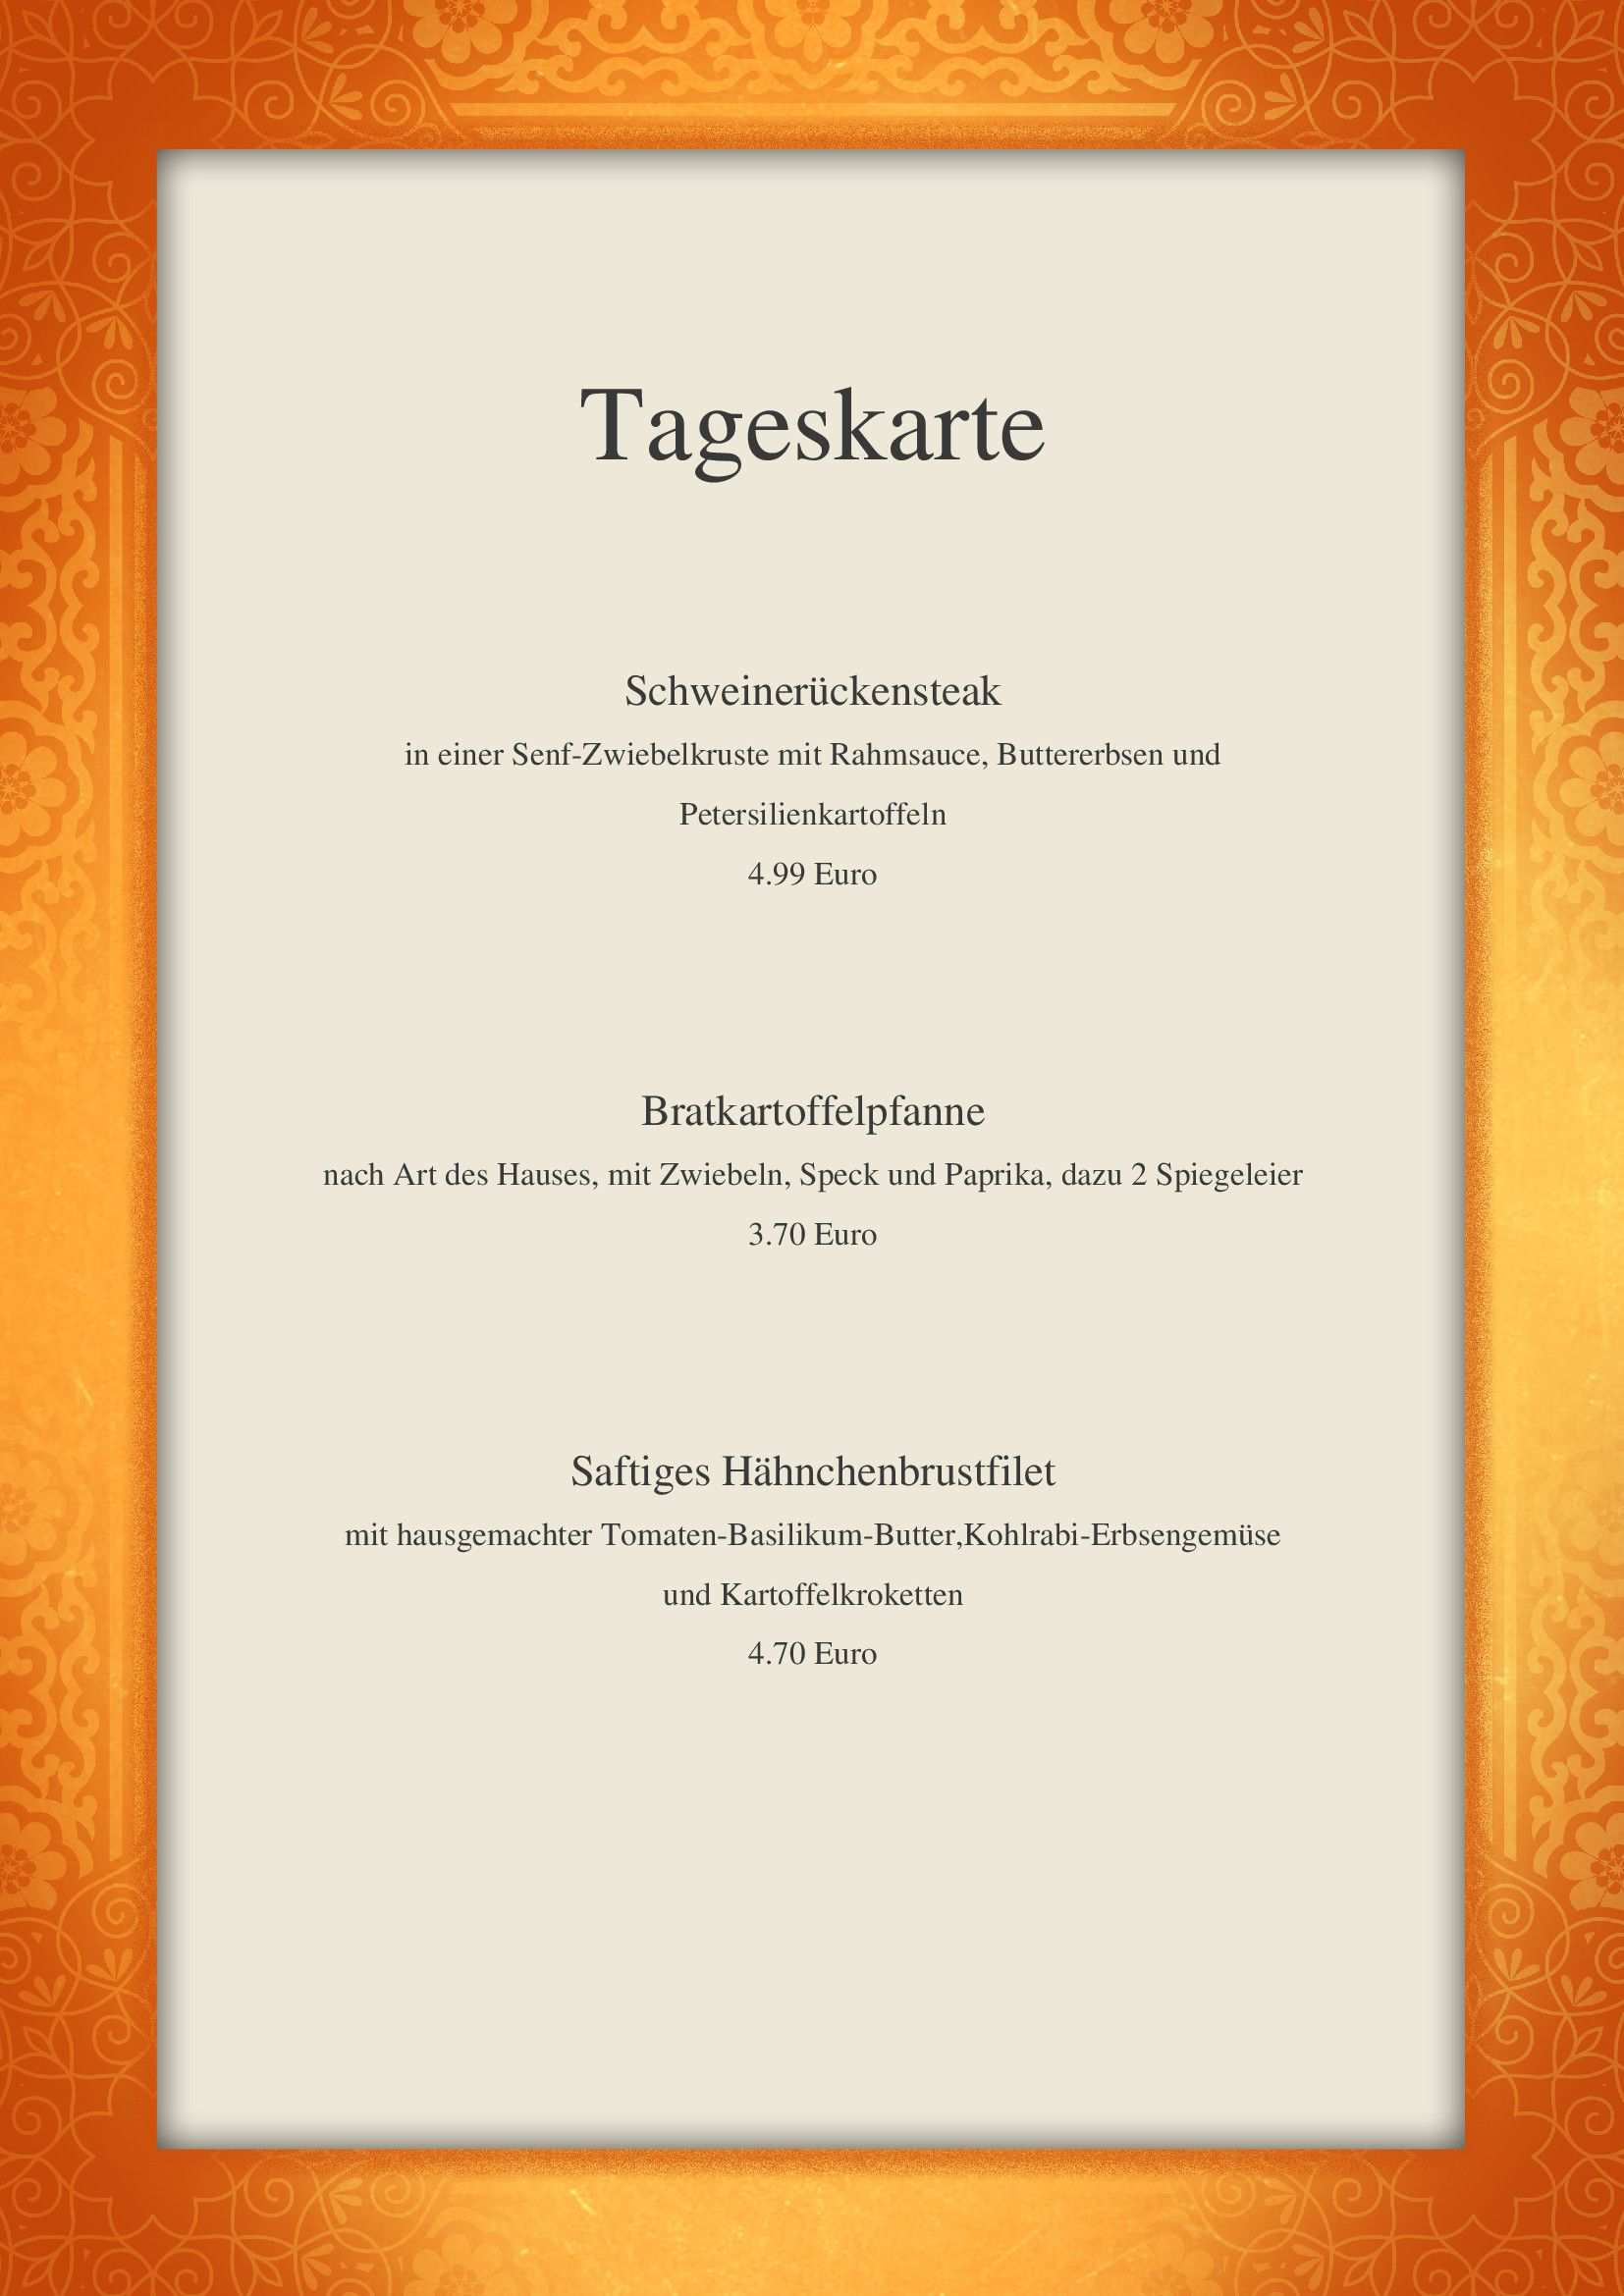 An Ideal Menu For Your Indian Restaurant Or Takeaway Shop Rendering An Authentic Feel Will Get Your Custom Speisekarte Italienische Speisekarte Menu Vorlage